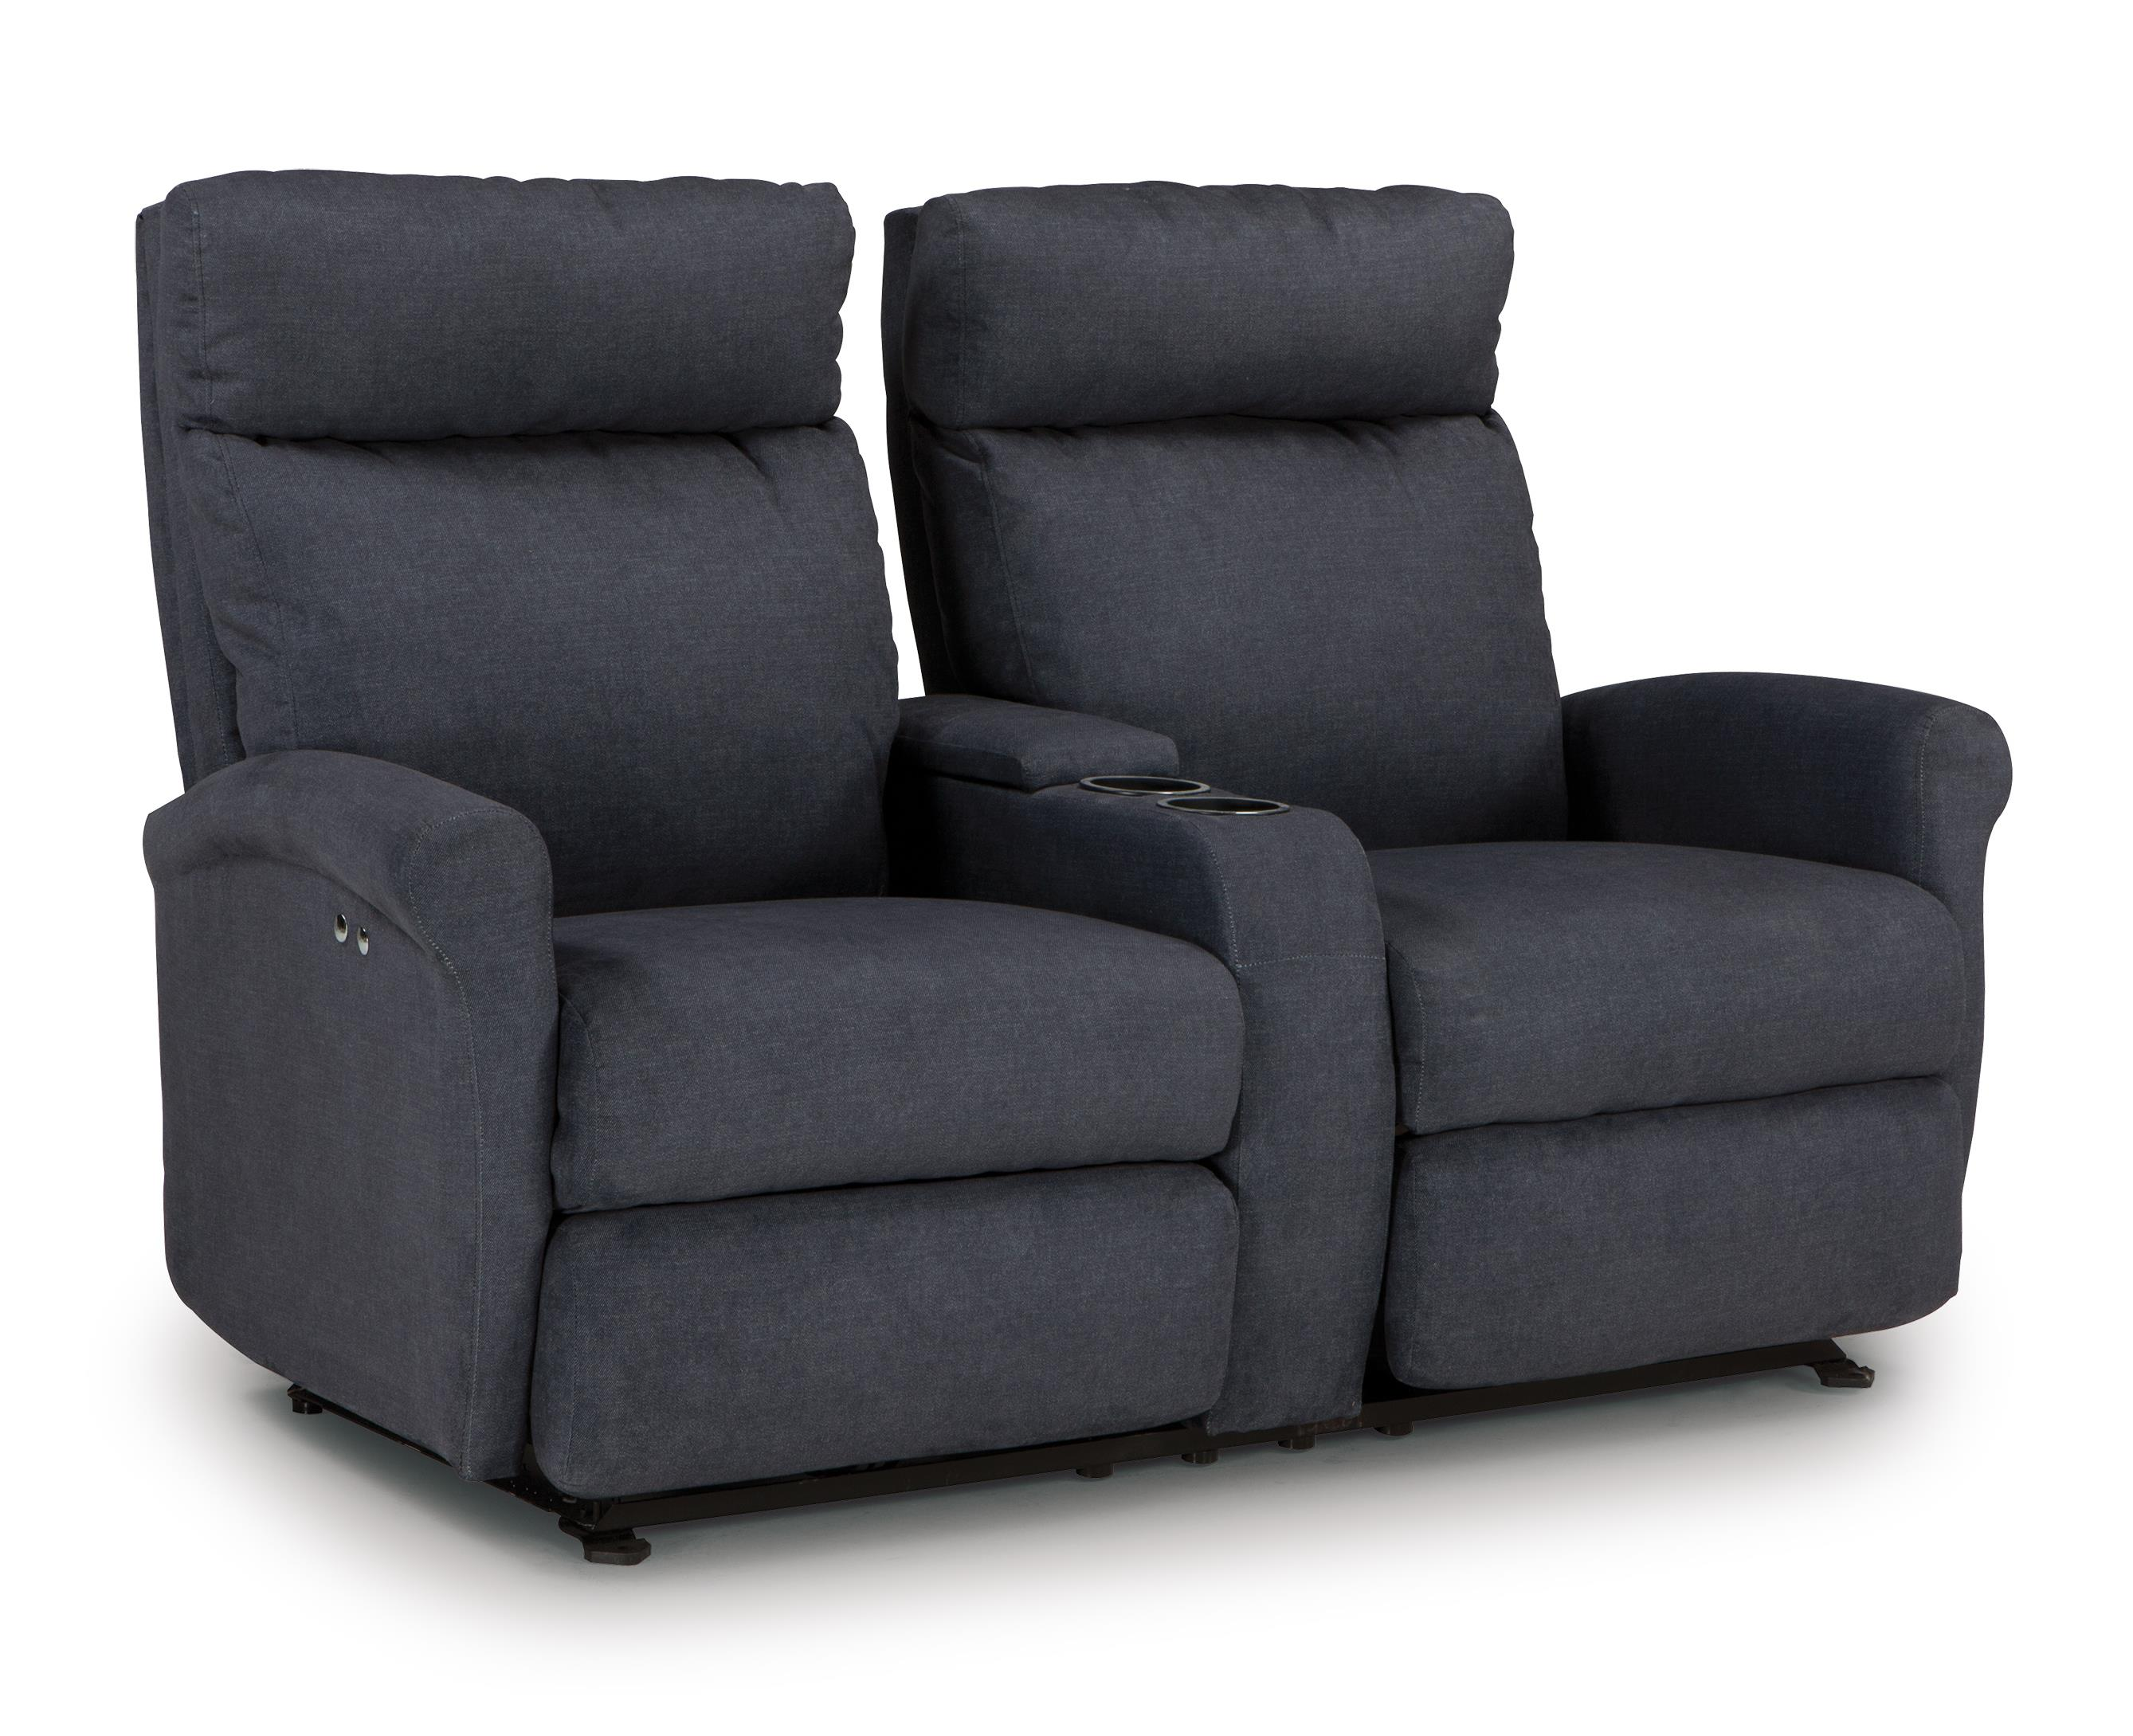 Best home furnishings codie power rocking reclining loveseat with storage console and cupholders Storage loveseat